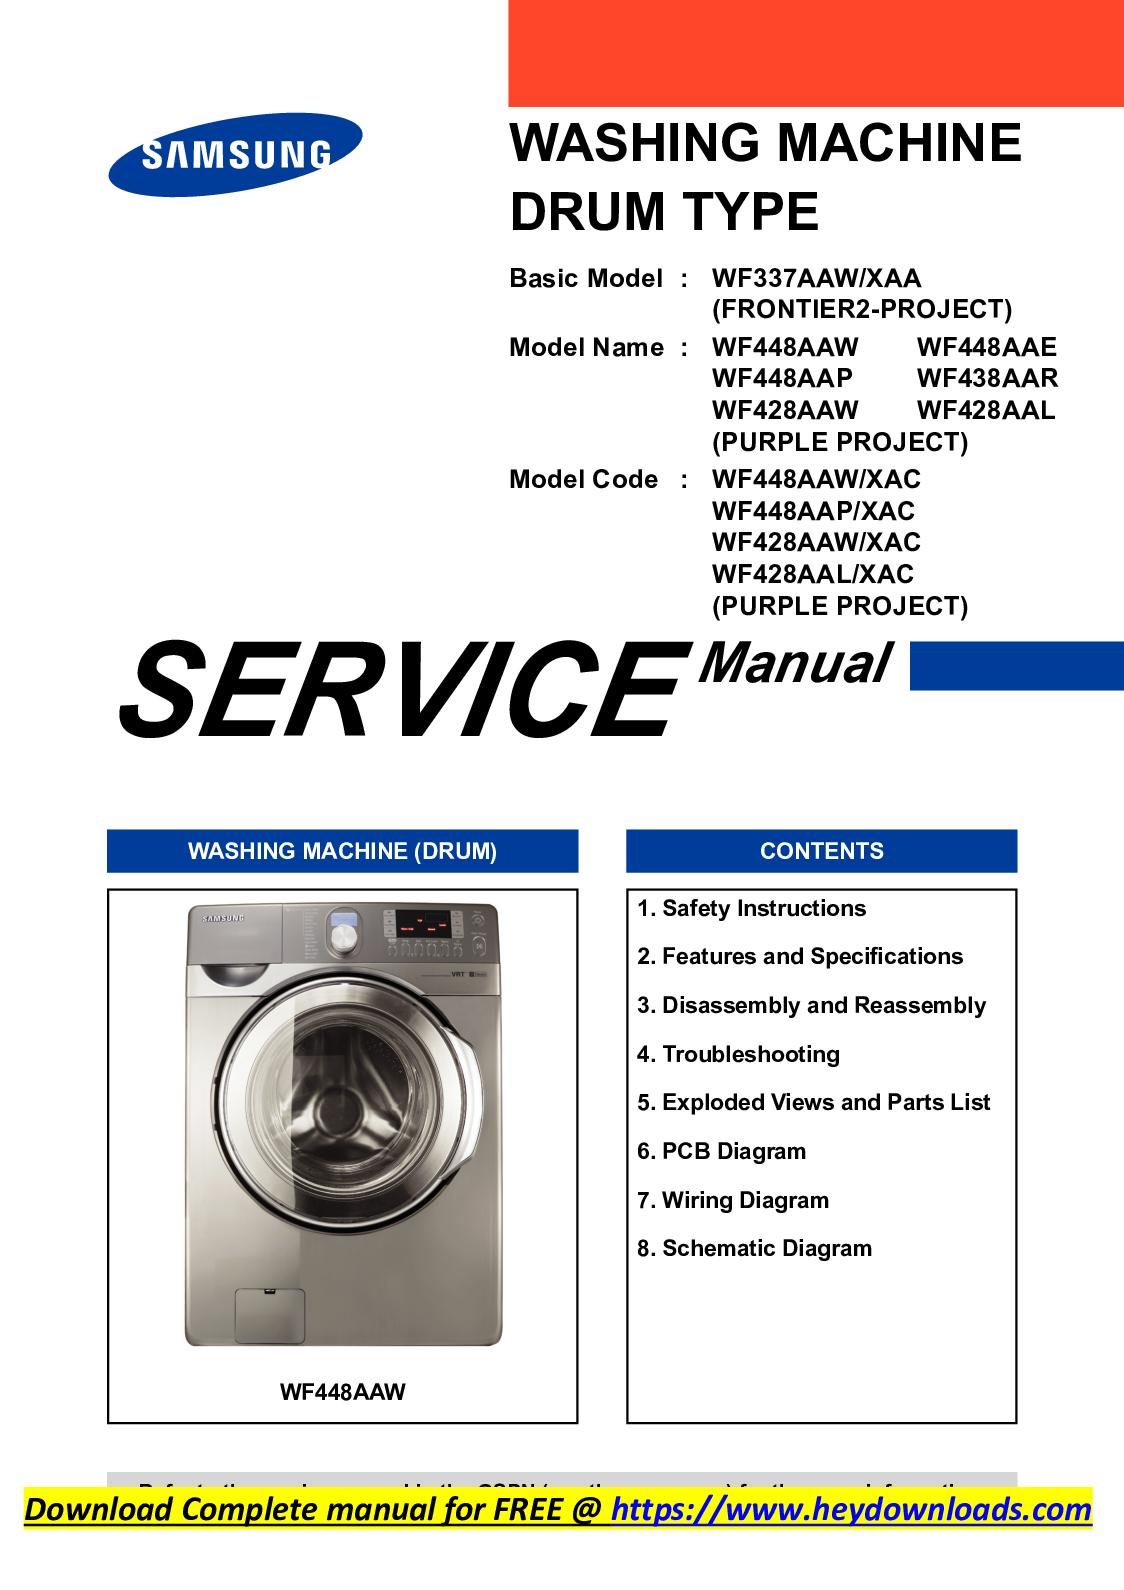 Calaméo - Samsung WF448AAW service manual download